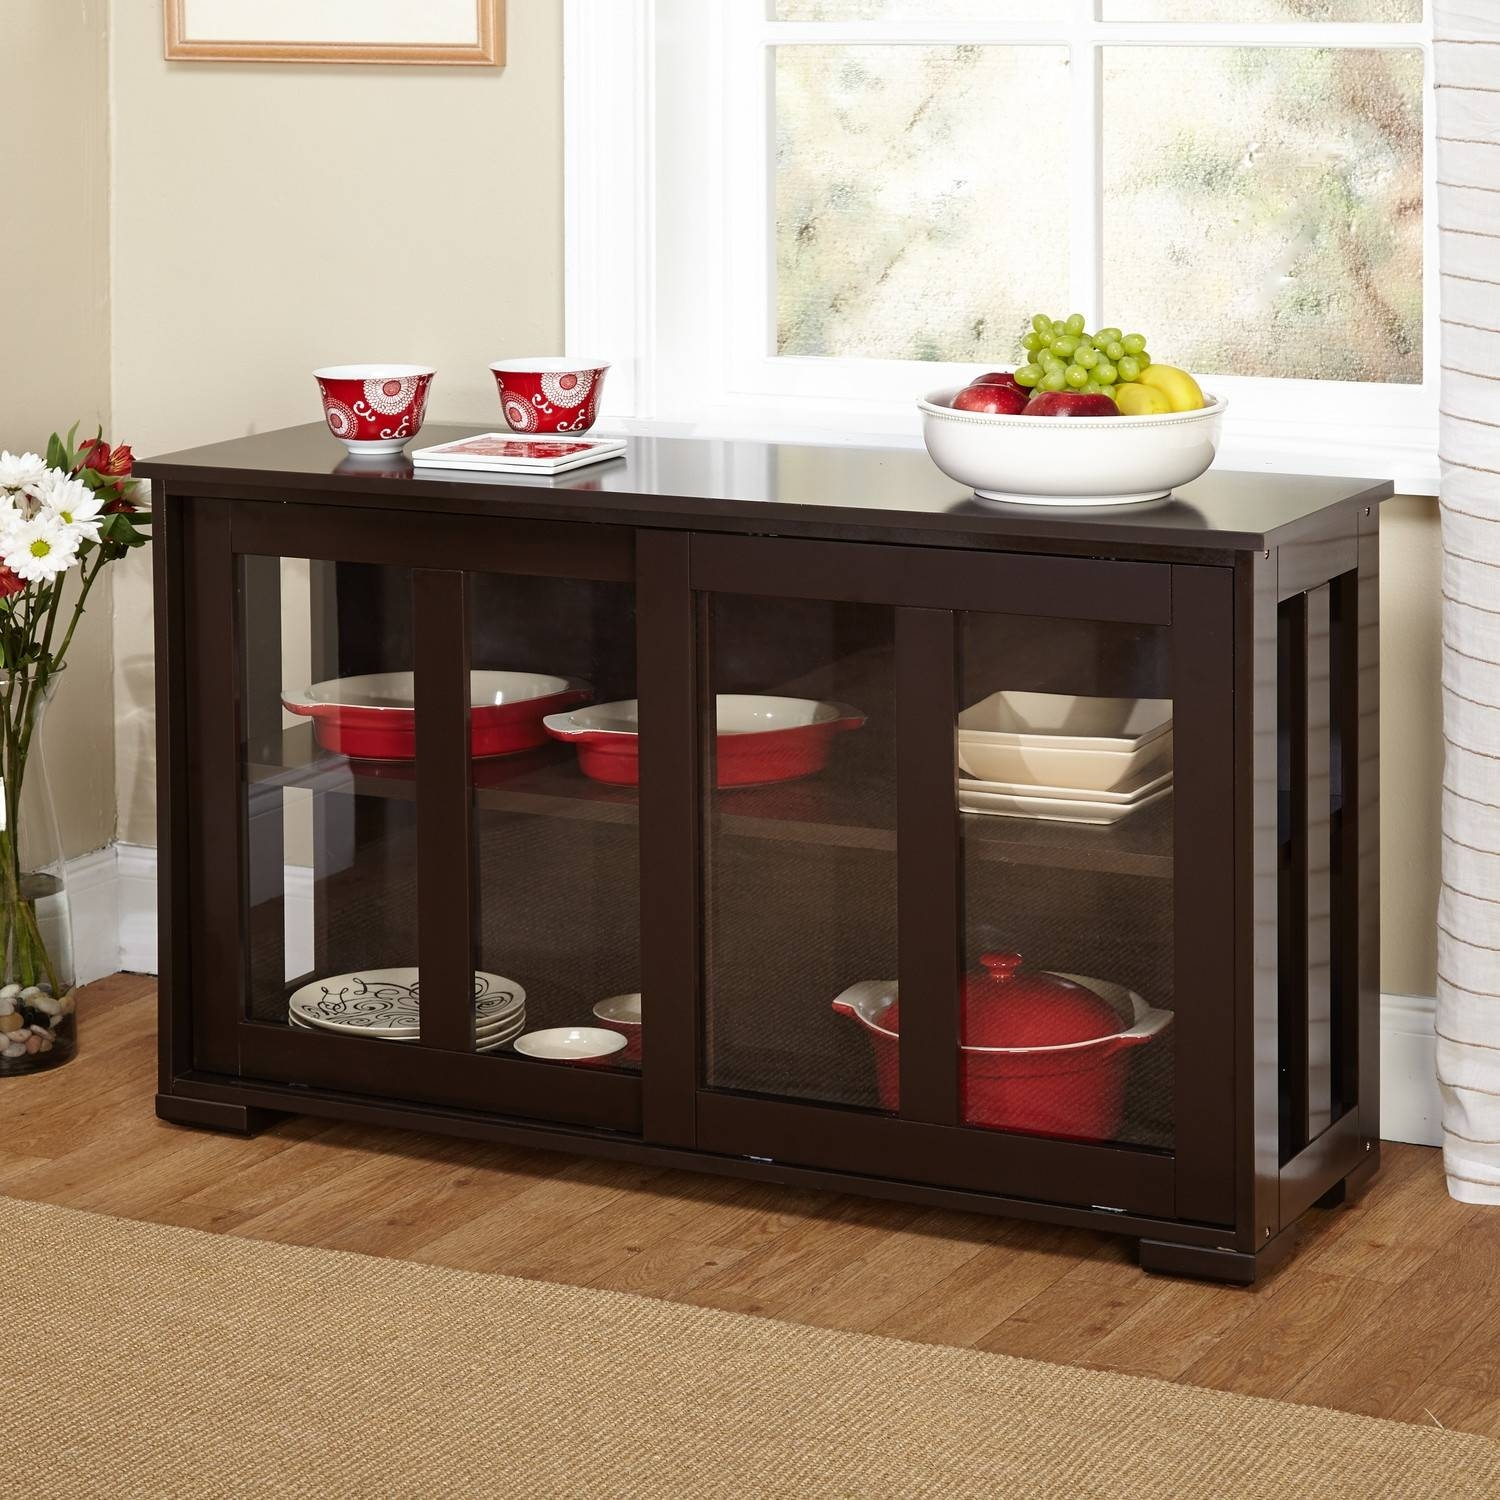 Espresso Buffet Cabinet | Home Appliances Decoration inside Glass Sideboards for Dining Room (Image 8 of 30)